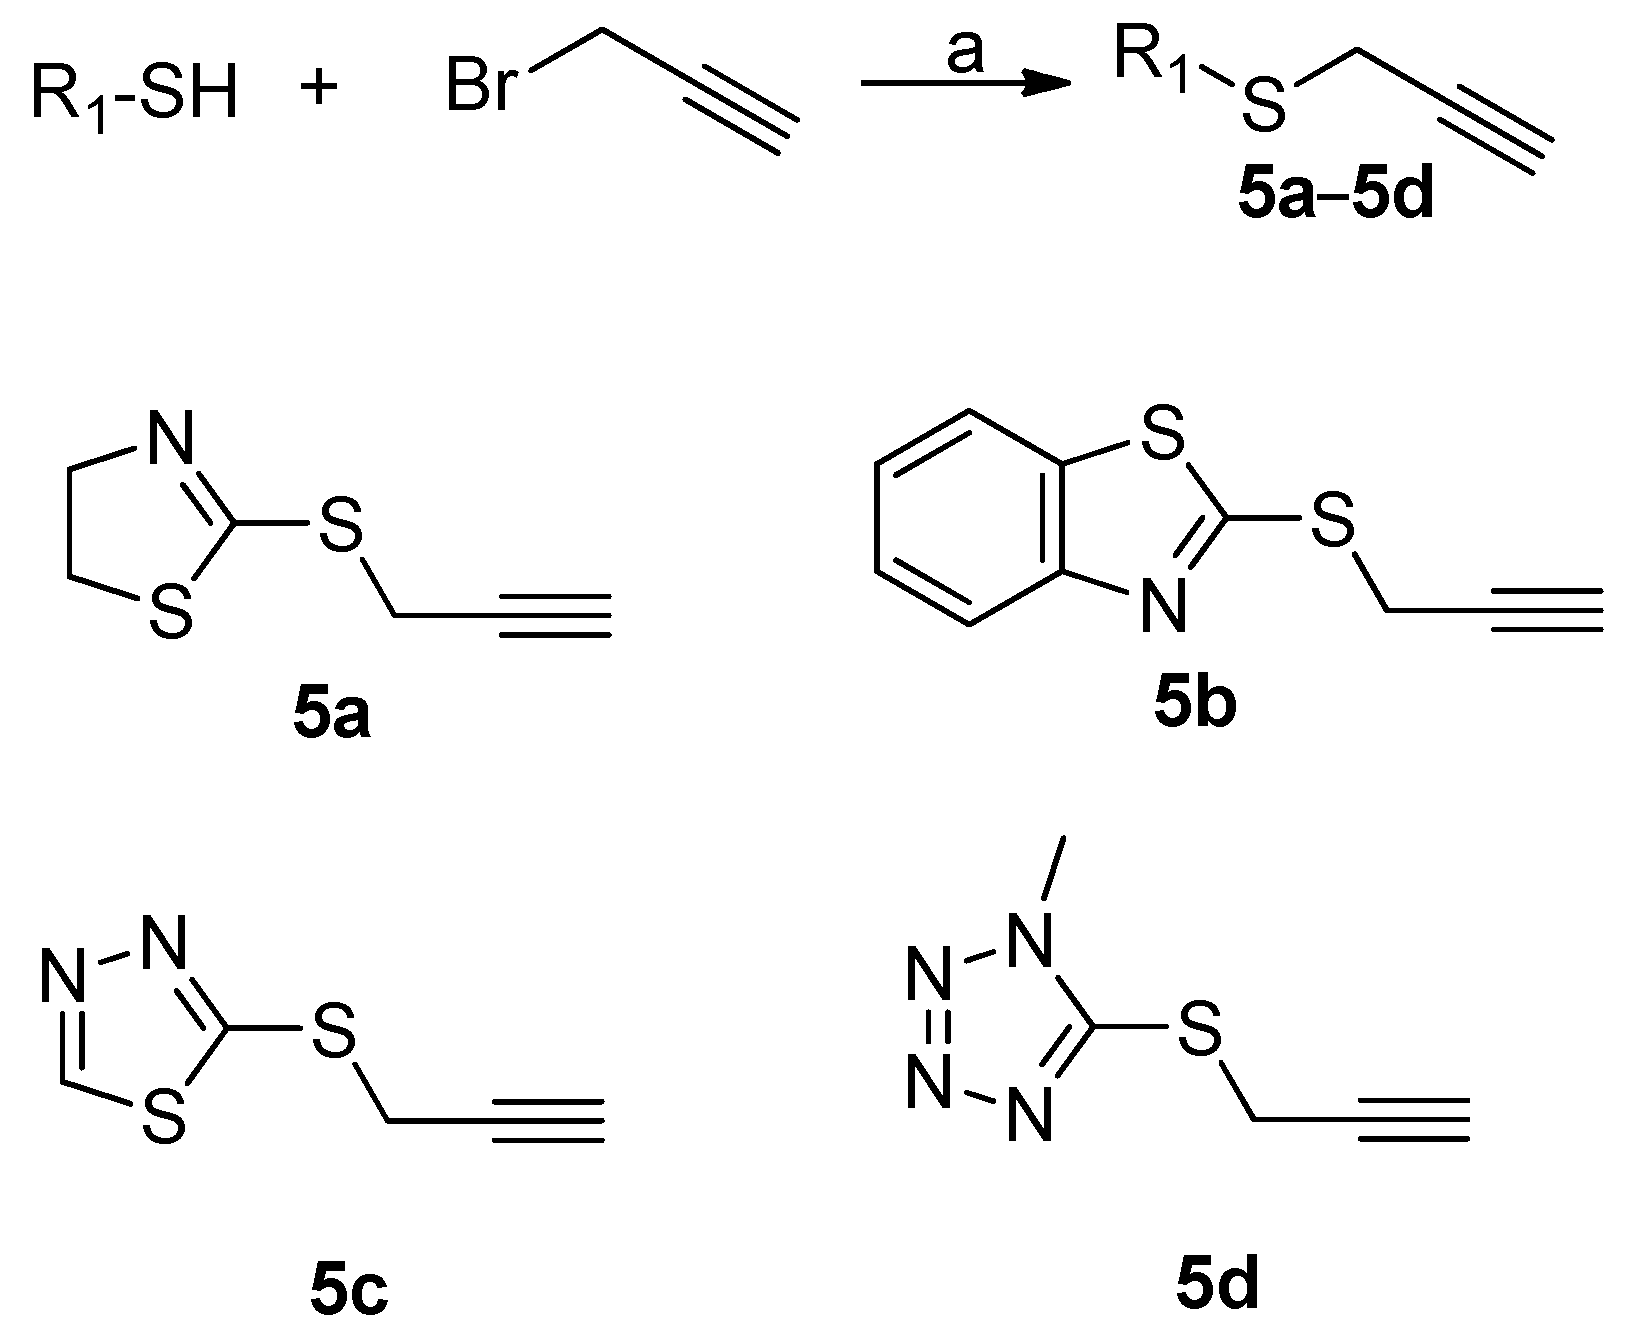 Molecules 21 00653 sch001